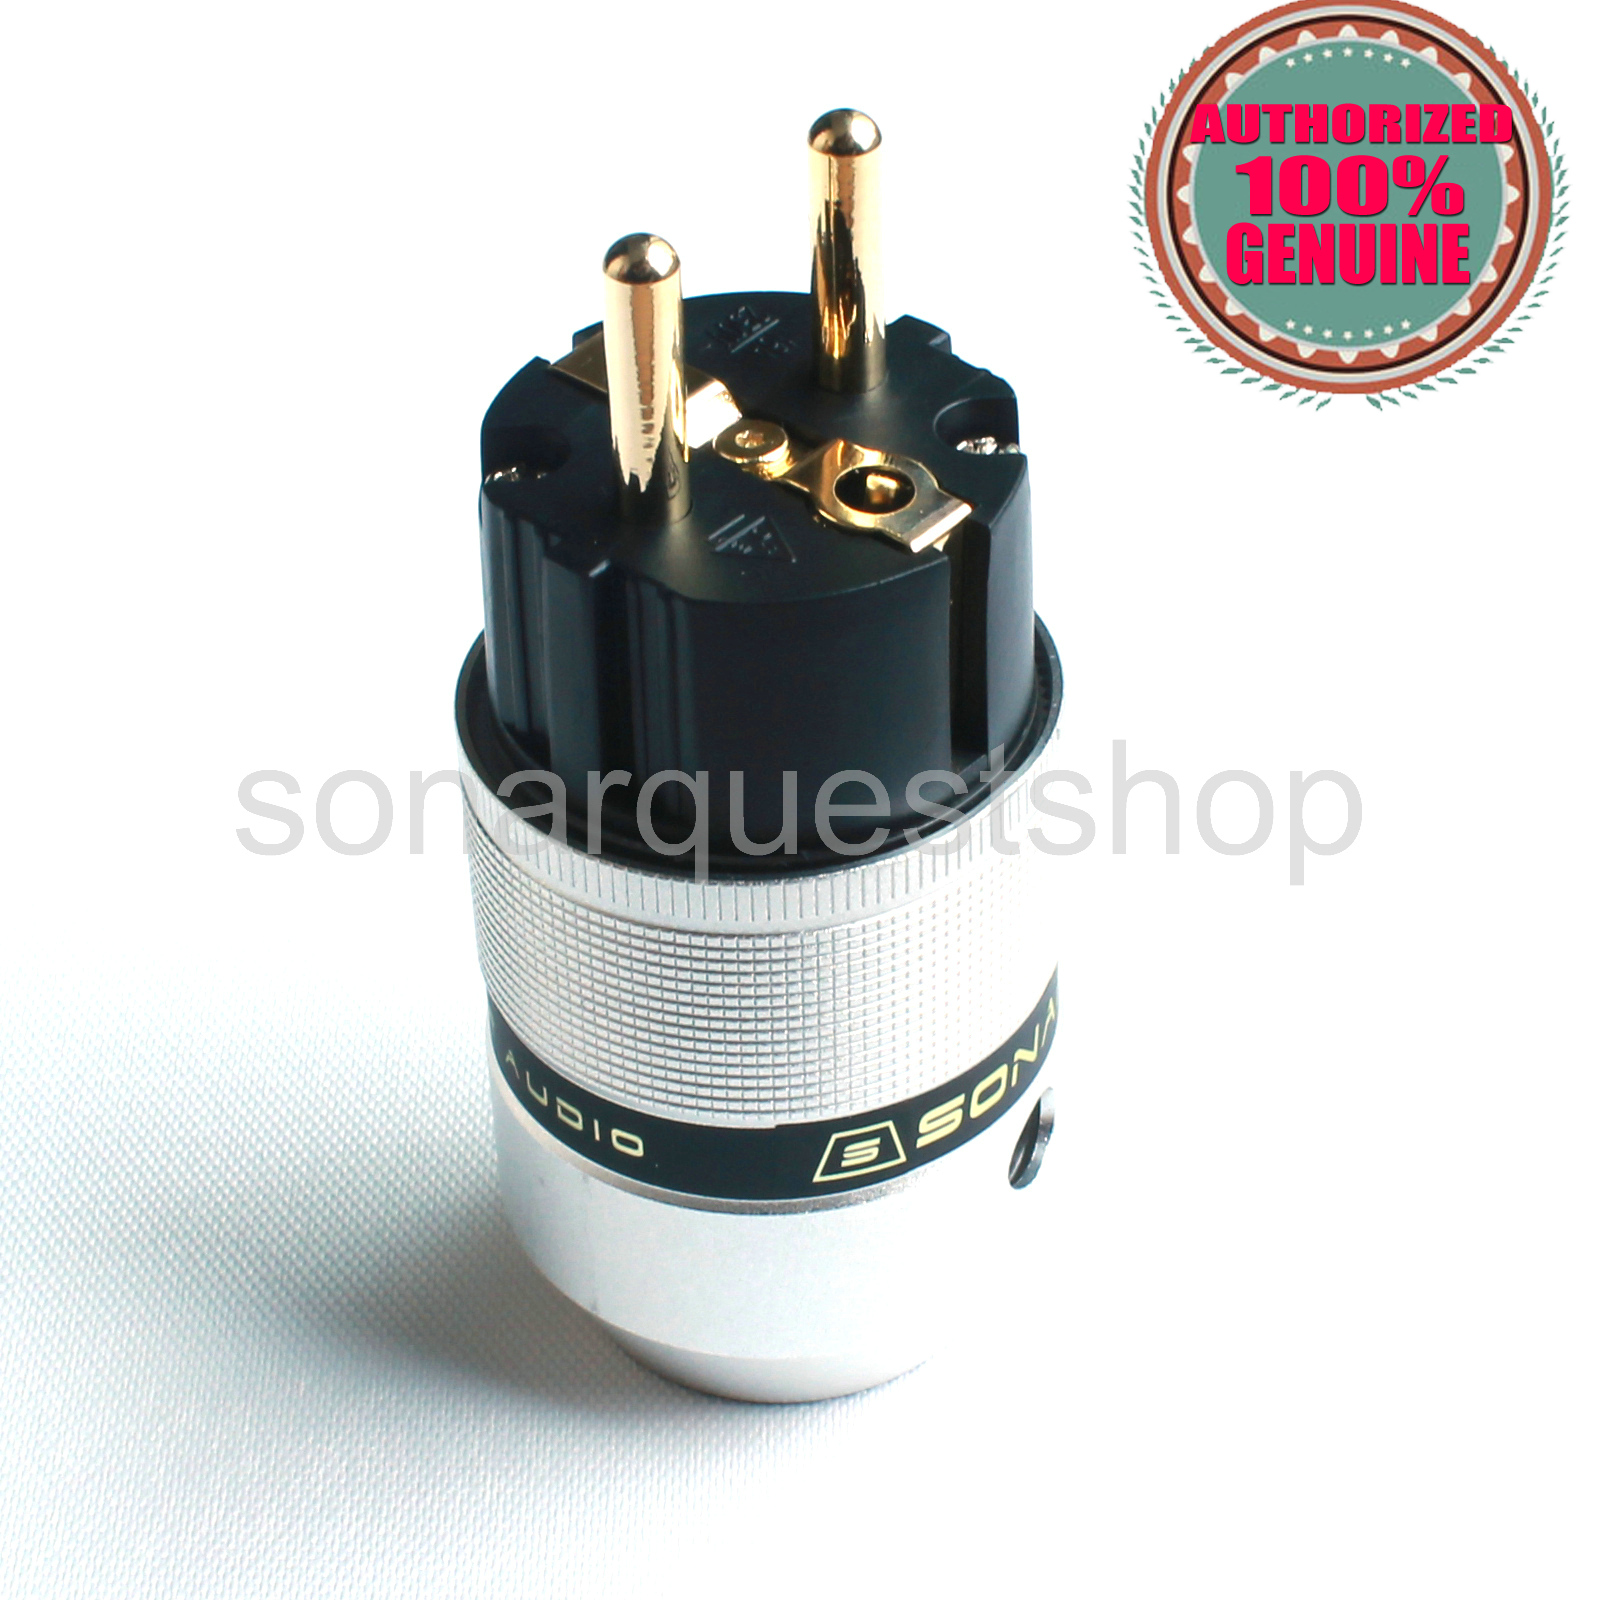 SONARQUEST E25 G(B) EU Gold Plated UP Black Aluminum alloy Power Plug